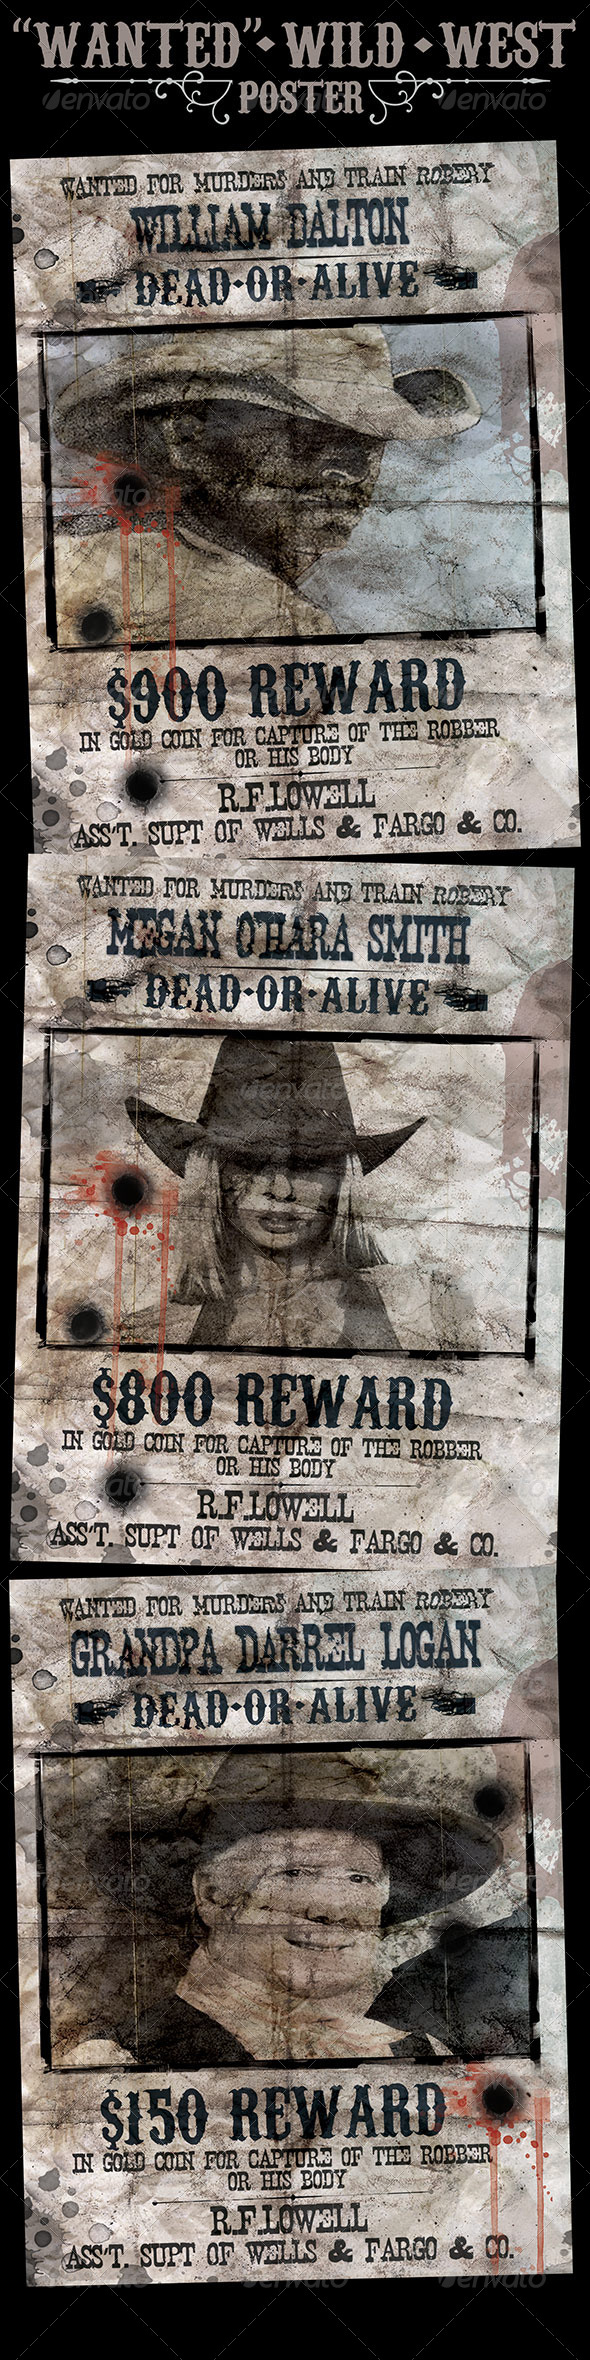 GraphicRiver Wanted Poster Wild West Style 4343326